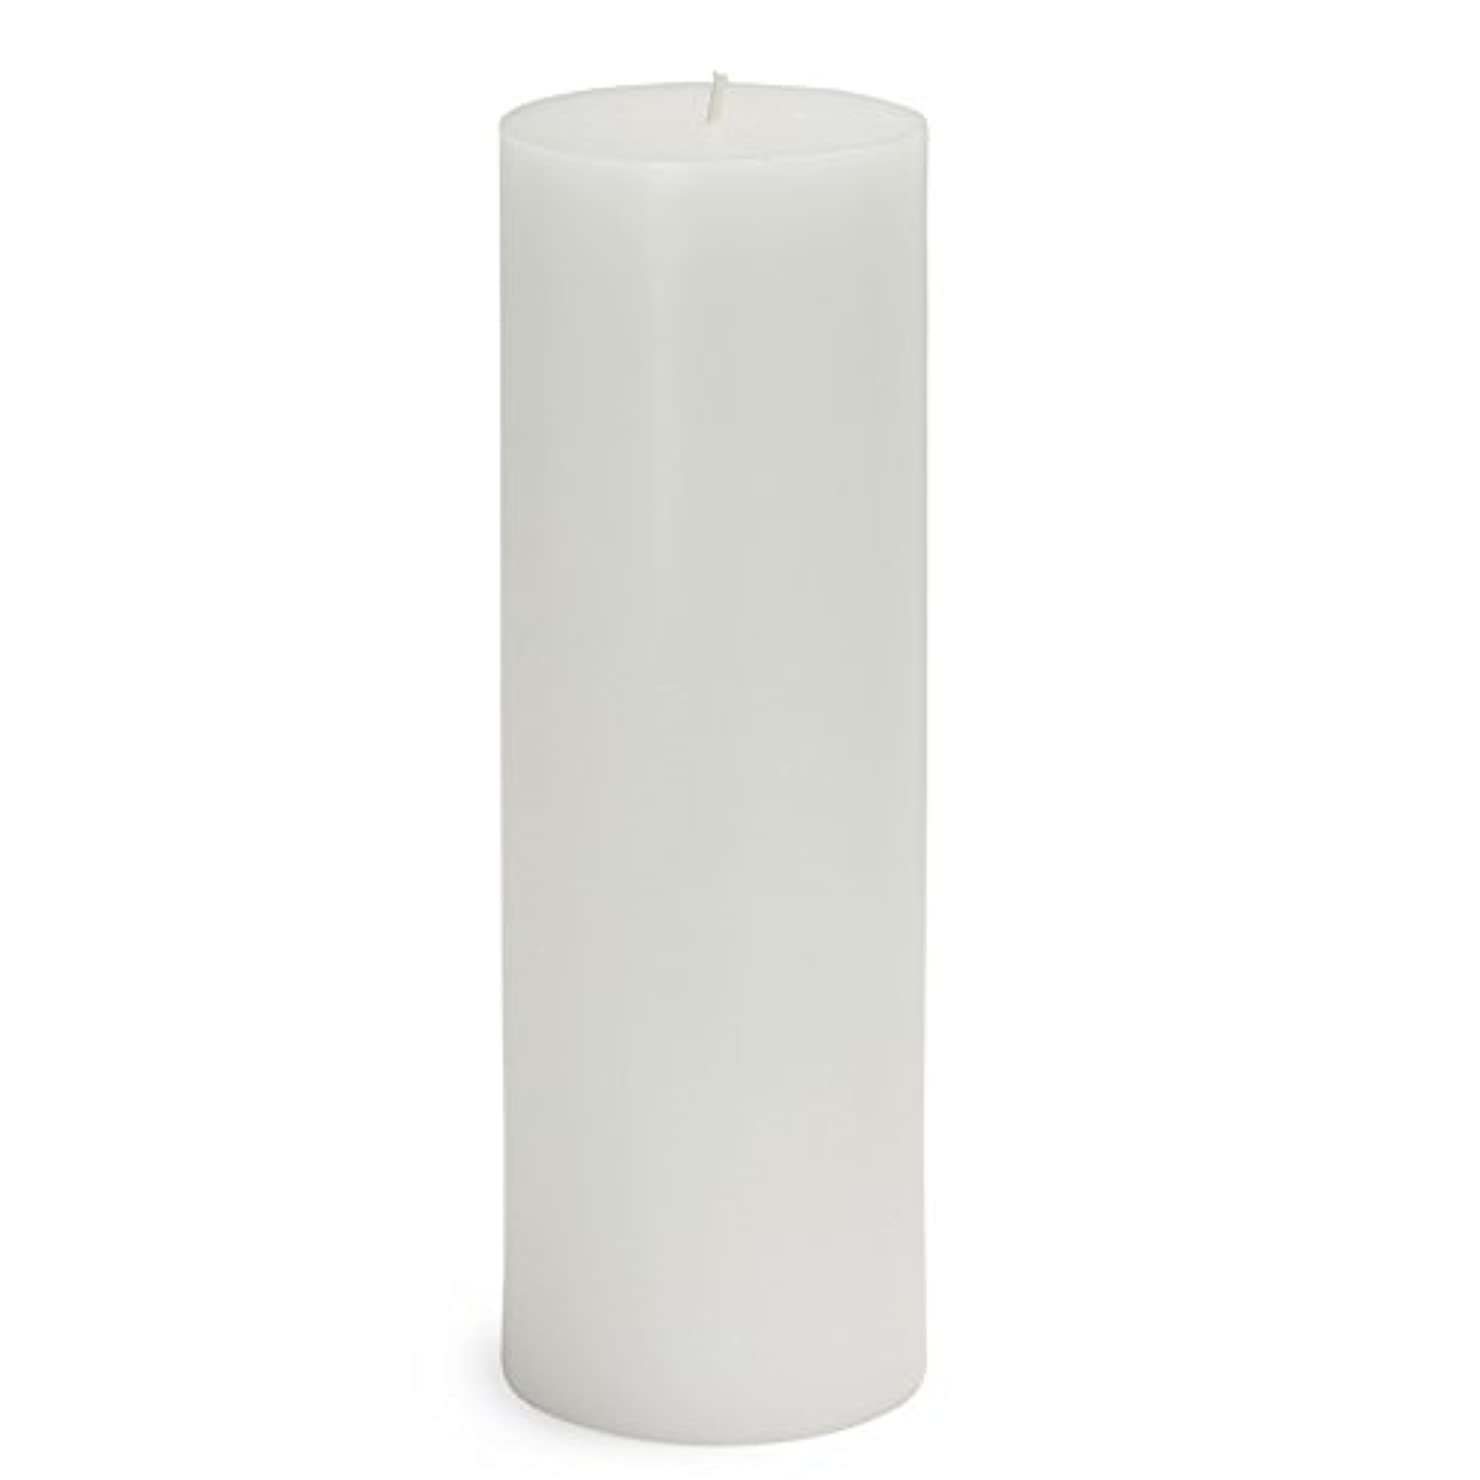 テレックス意気揚々怒りZest Candle CPZ-093-12 3 x 9 in. White Pillar Candles -12pcs-Case - Bulk